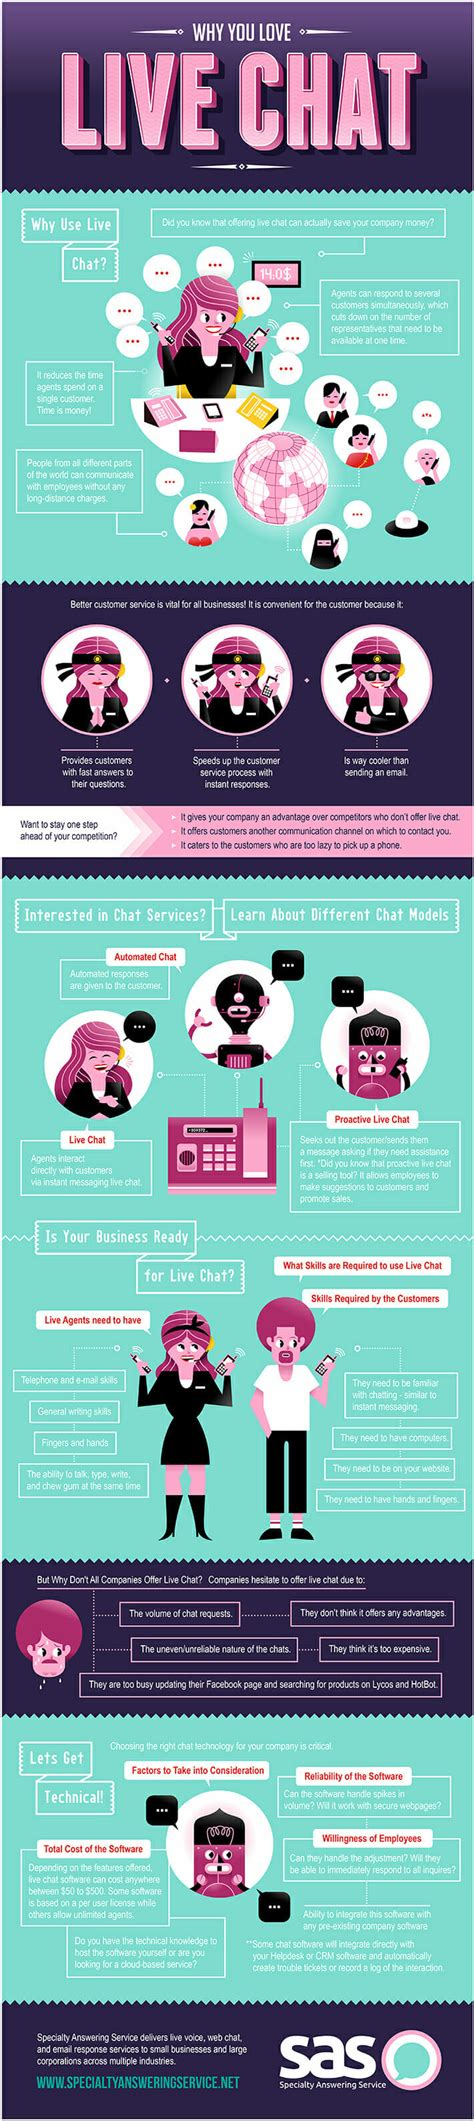 Sas Live Chat by Infographic Explaining What Is Live Chat Support